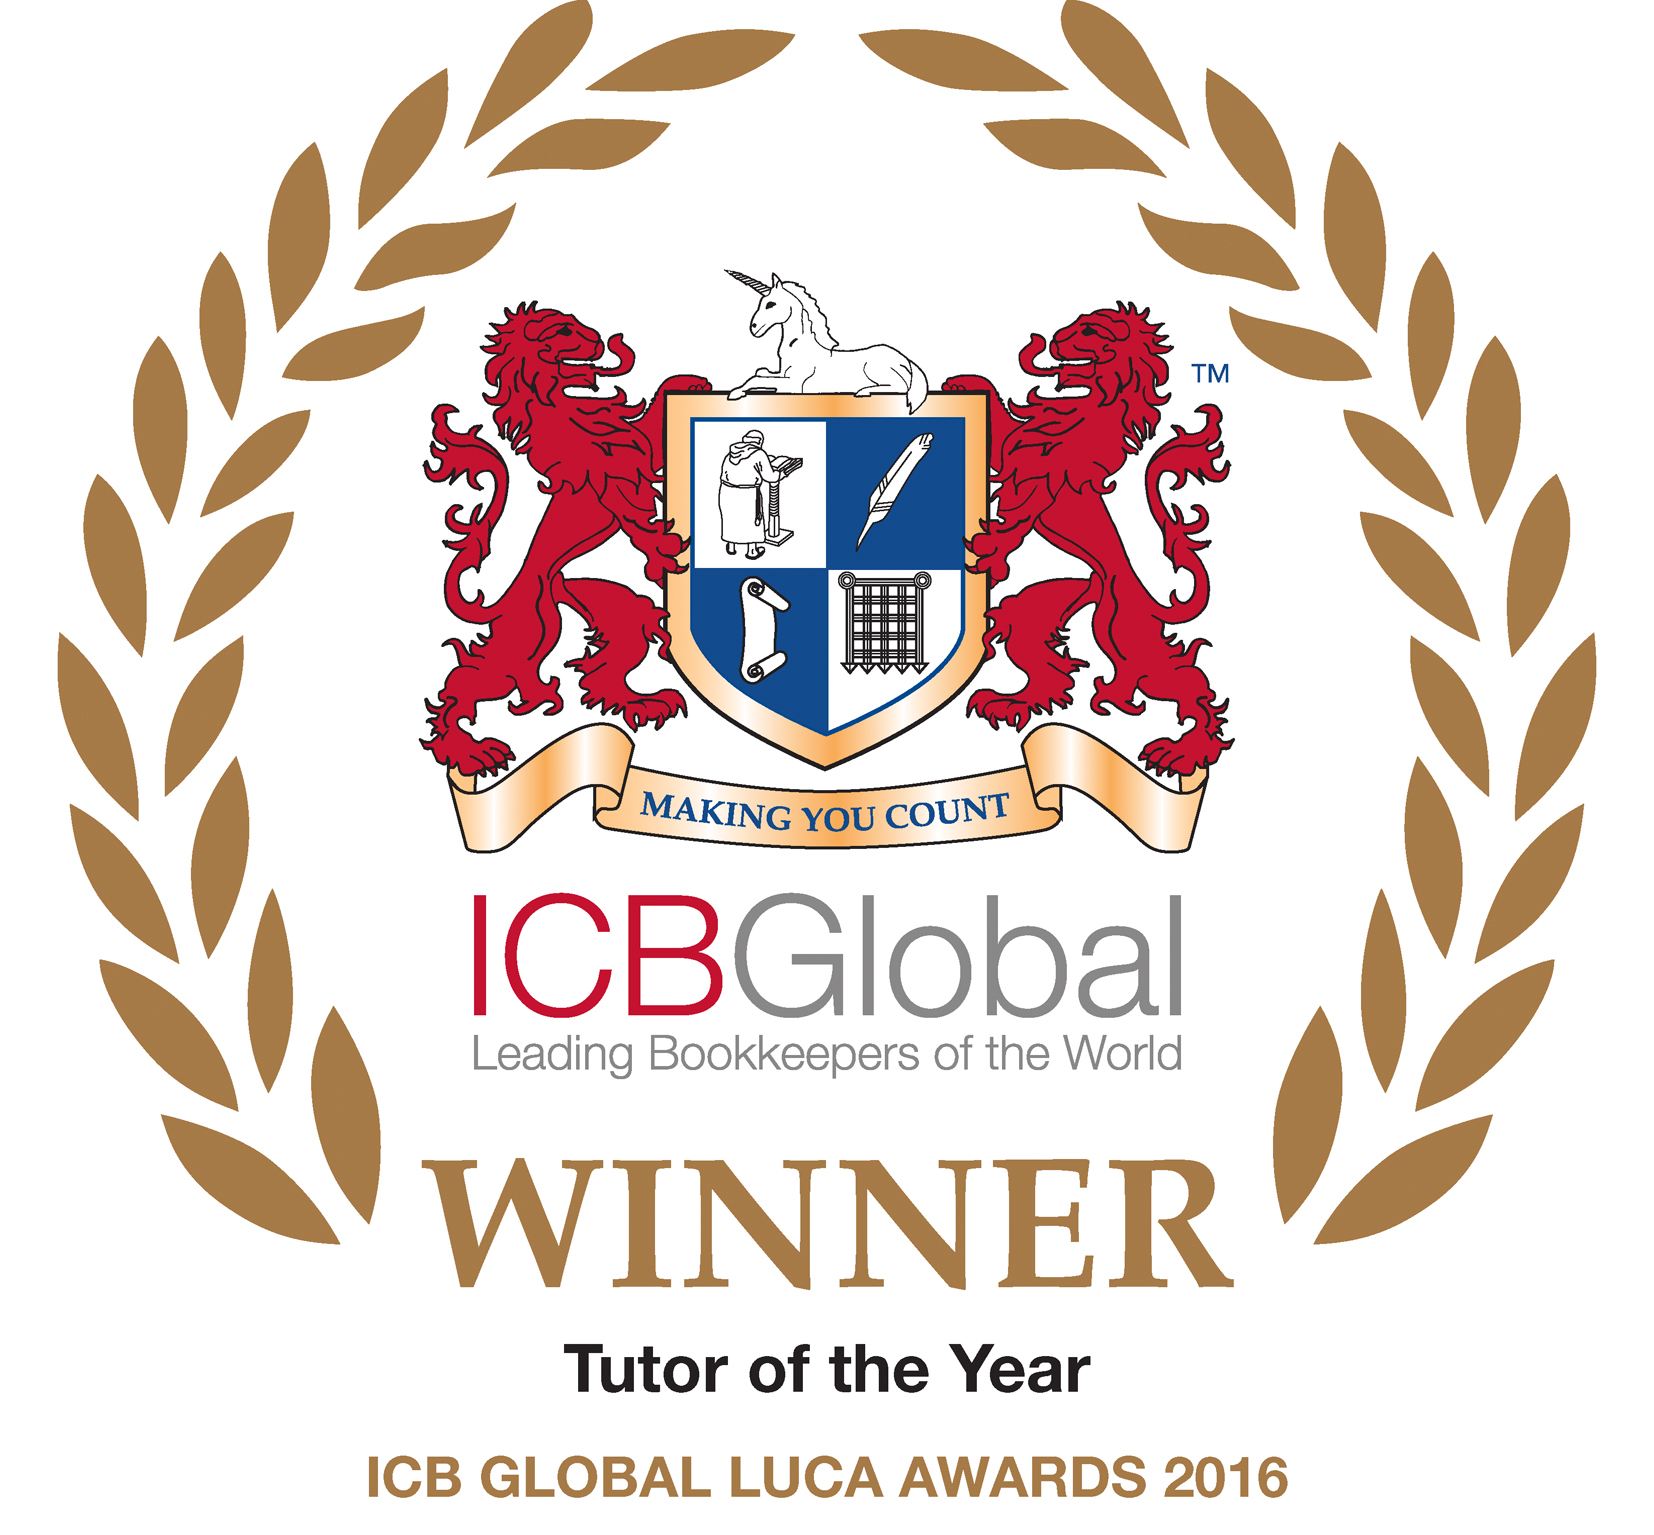 Tutor of the Year Nominee 2016